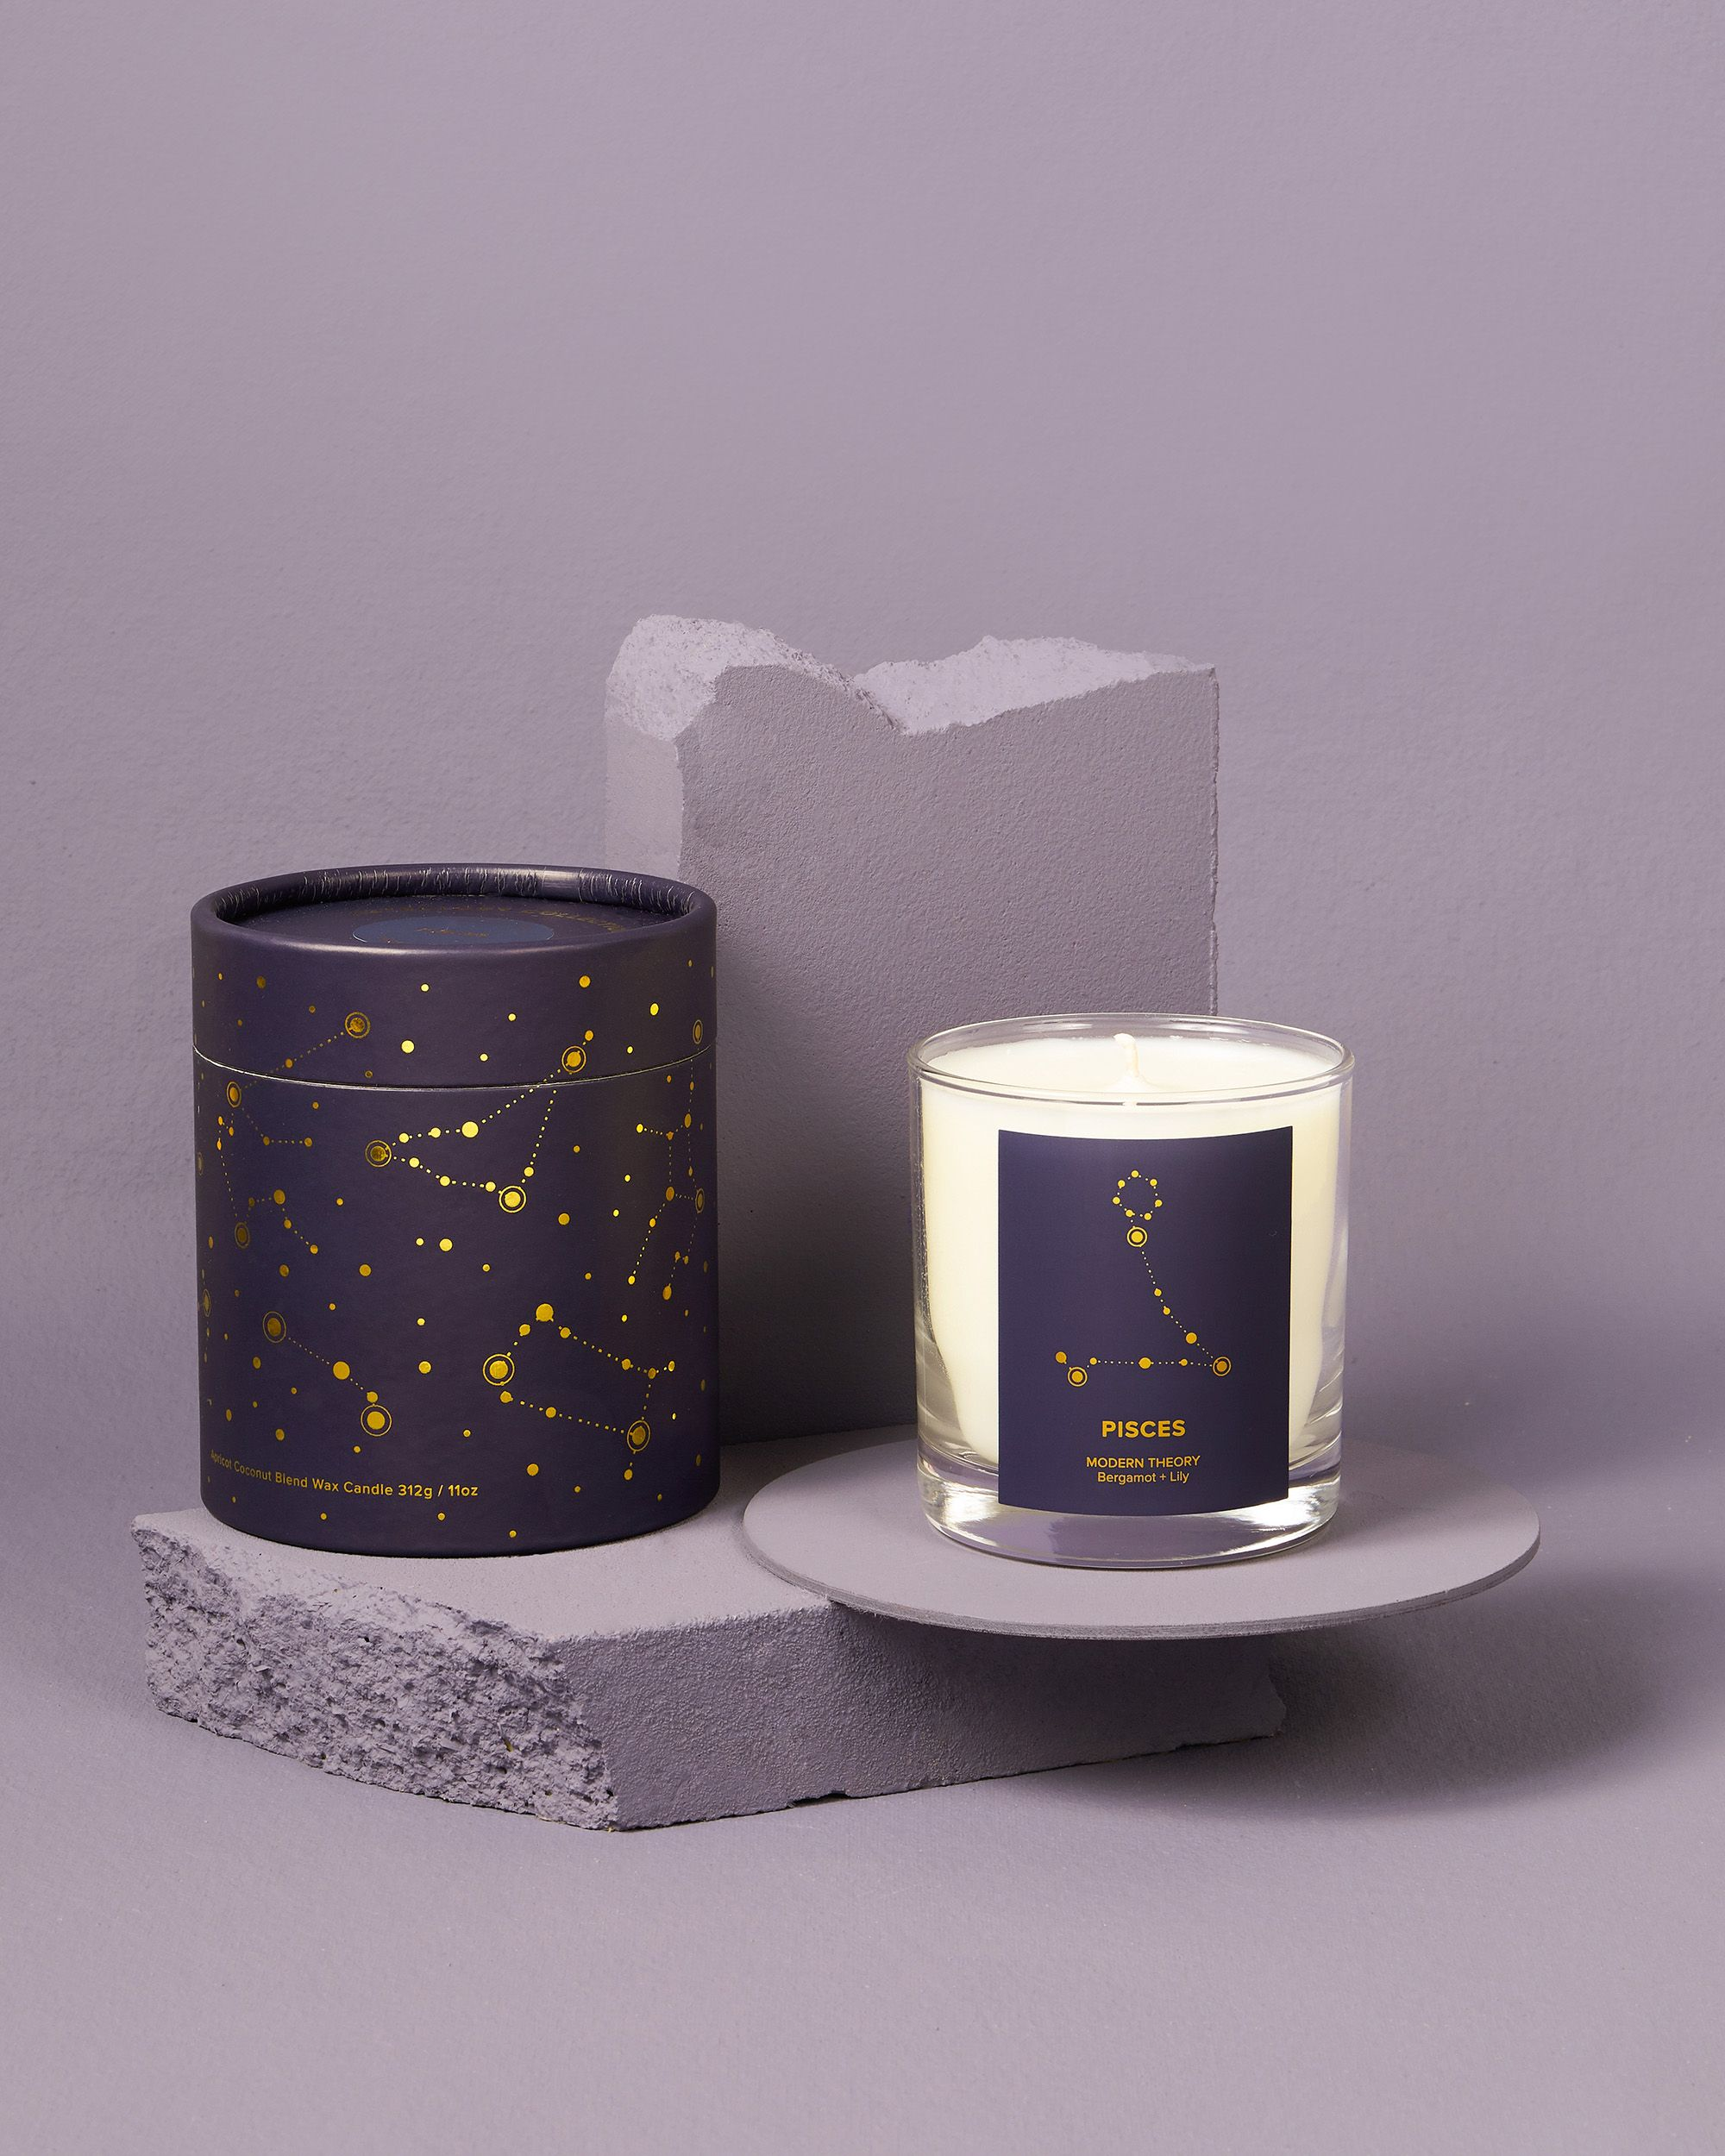 Product Image for Pisces Candle